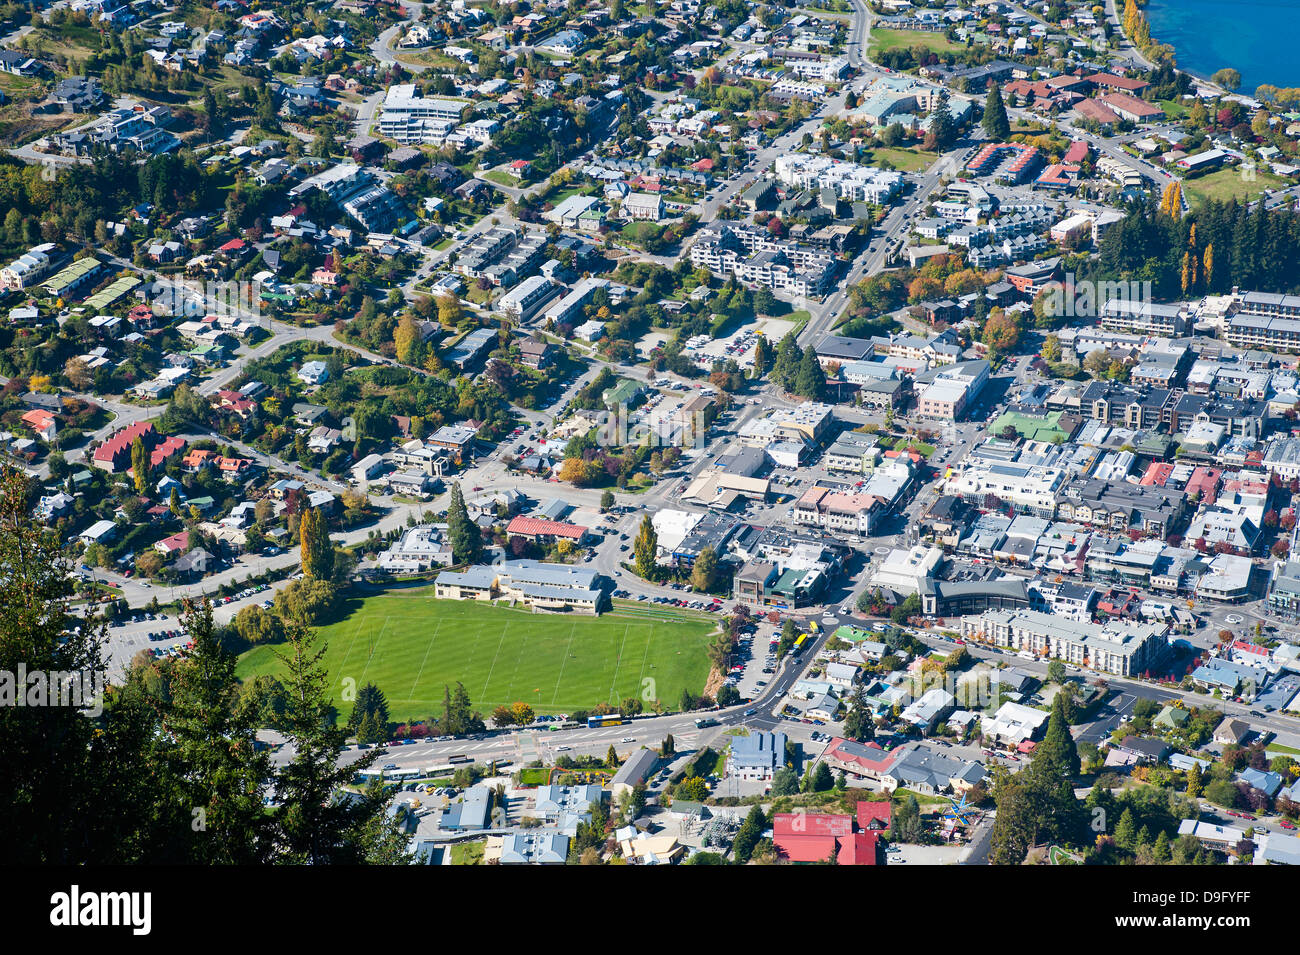 Aerial photo of Queenstown, Otago, South Island, New Zealand - Stock Image